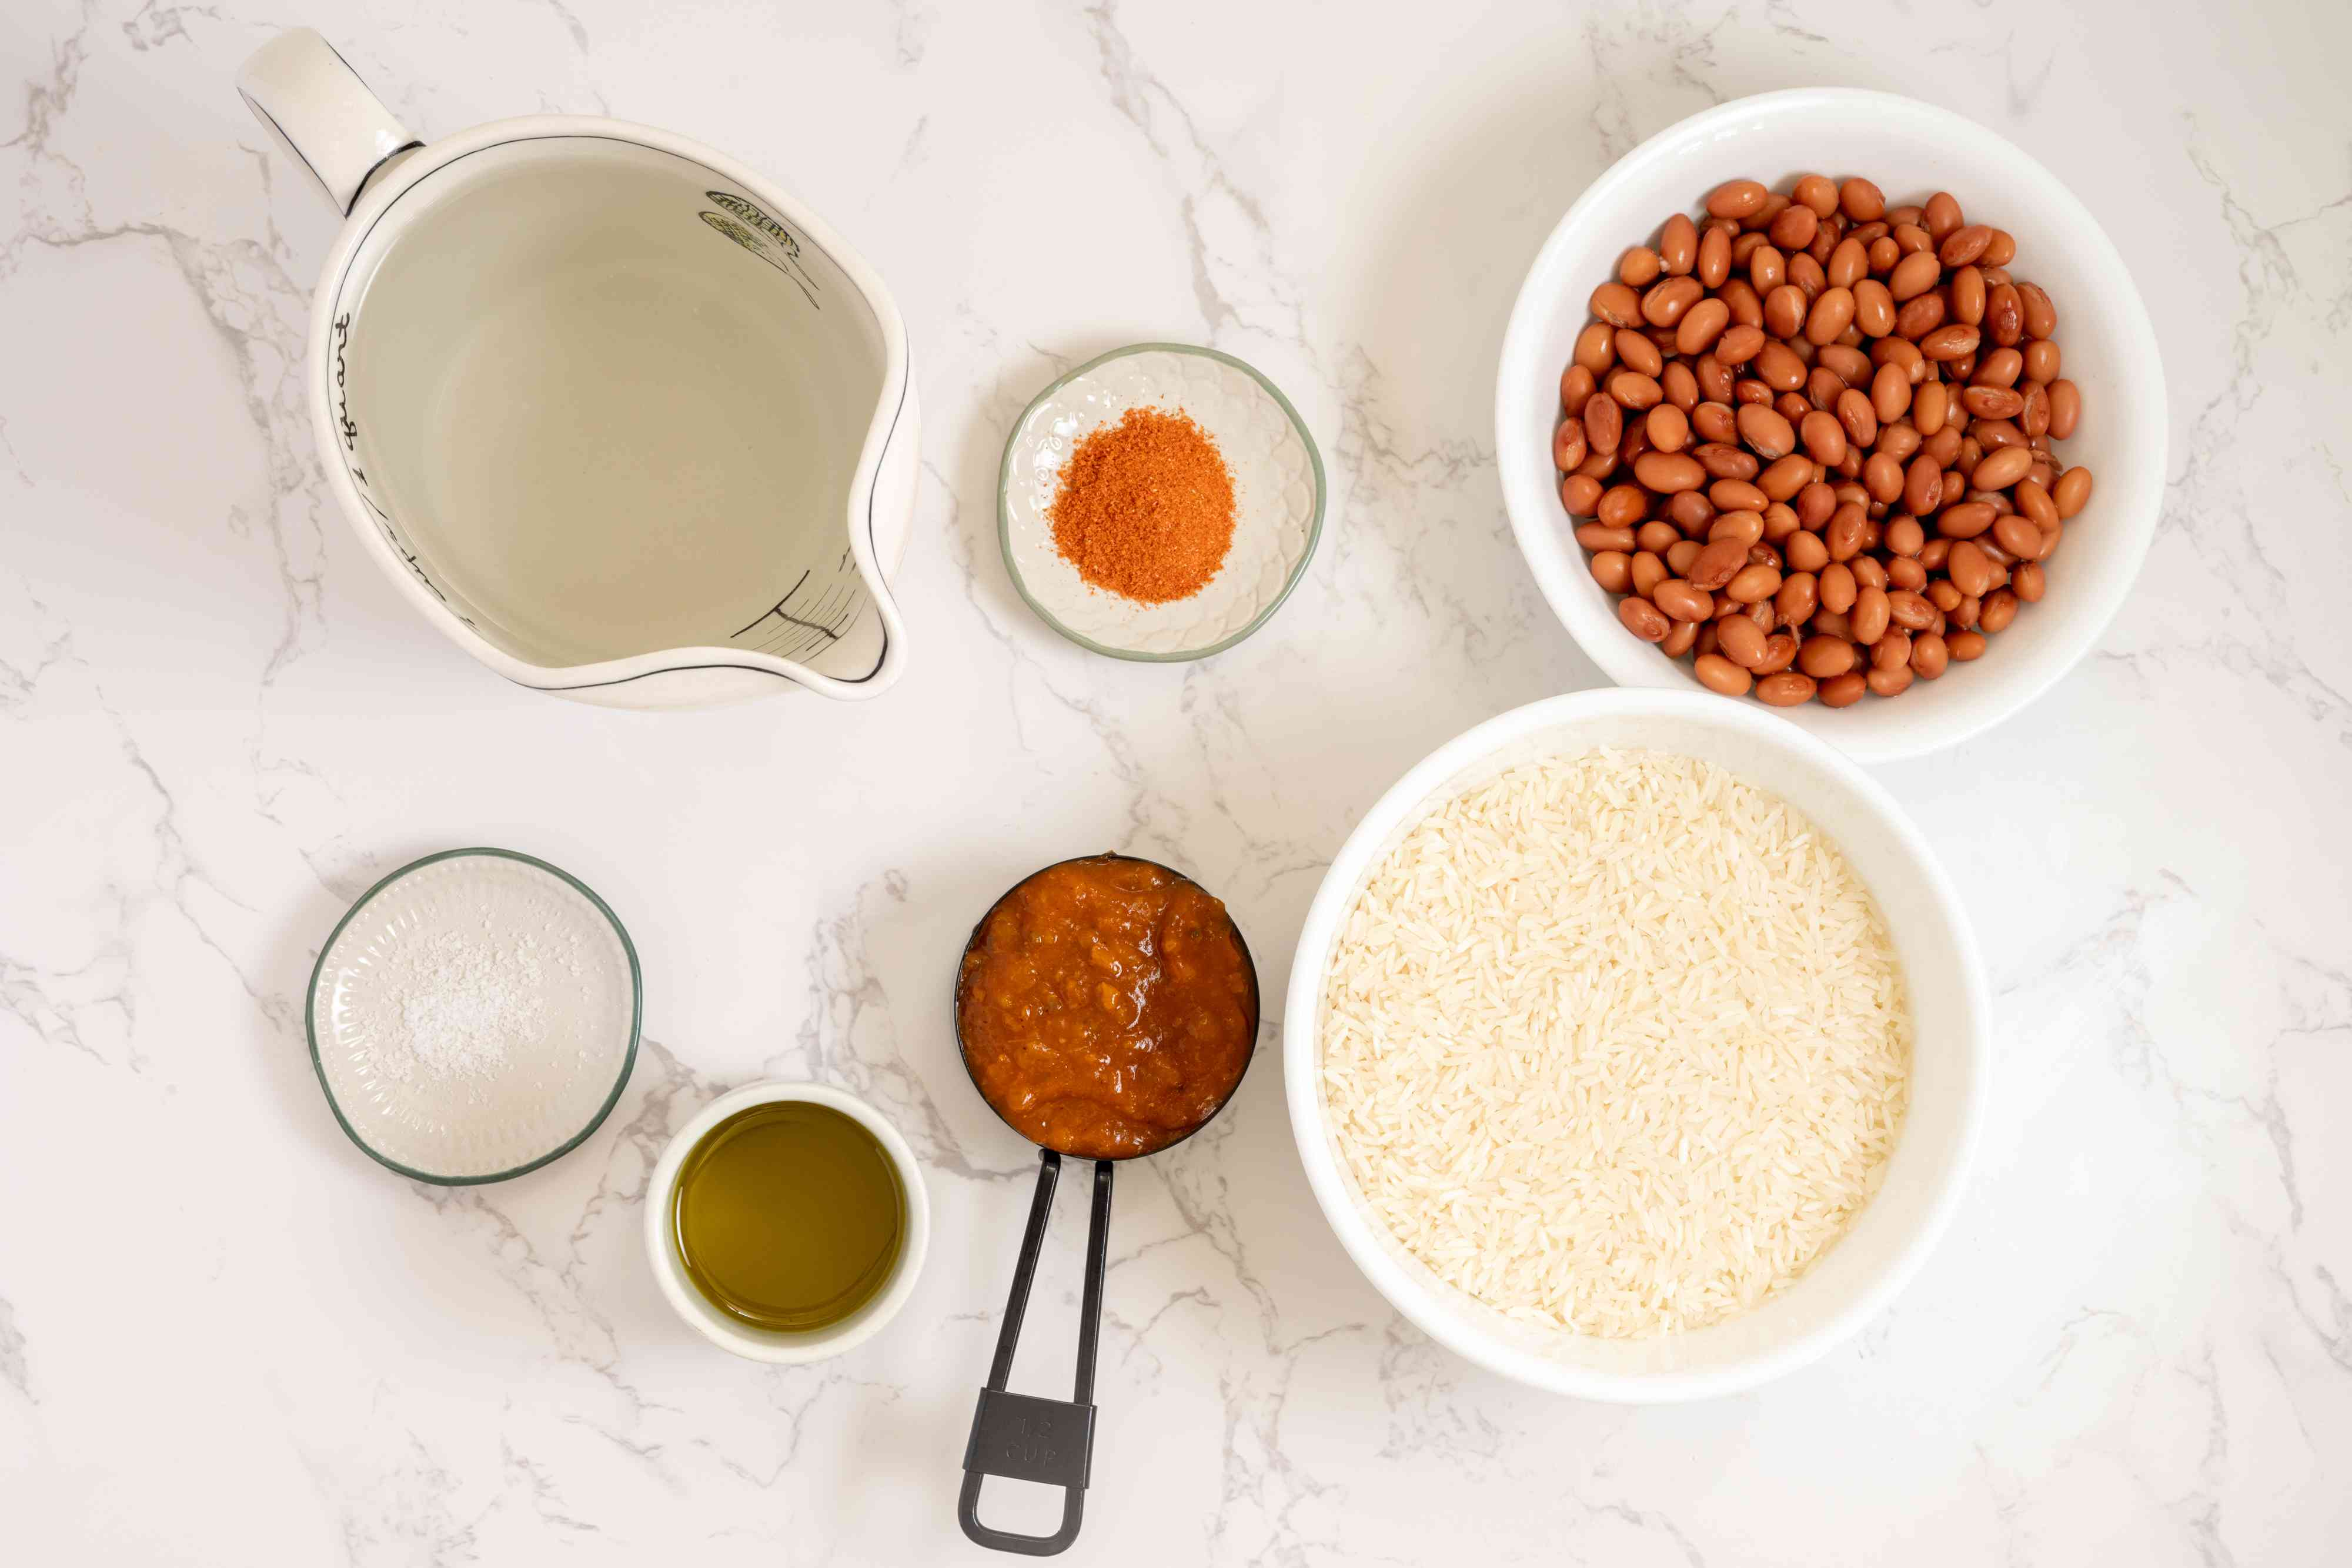 Caribbean Yellow Rice and Pink Beans ingredients